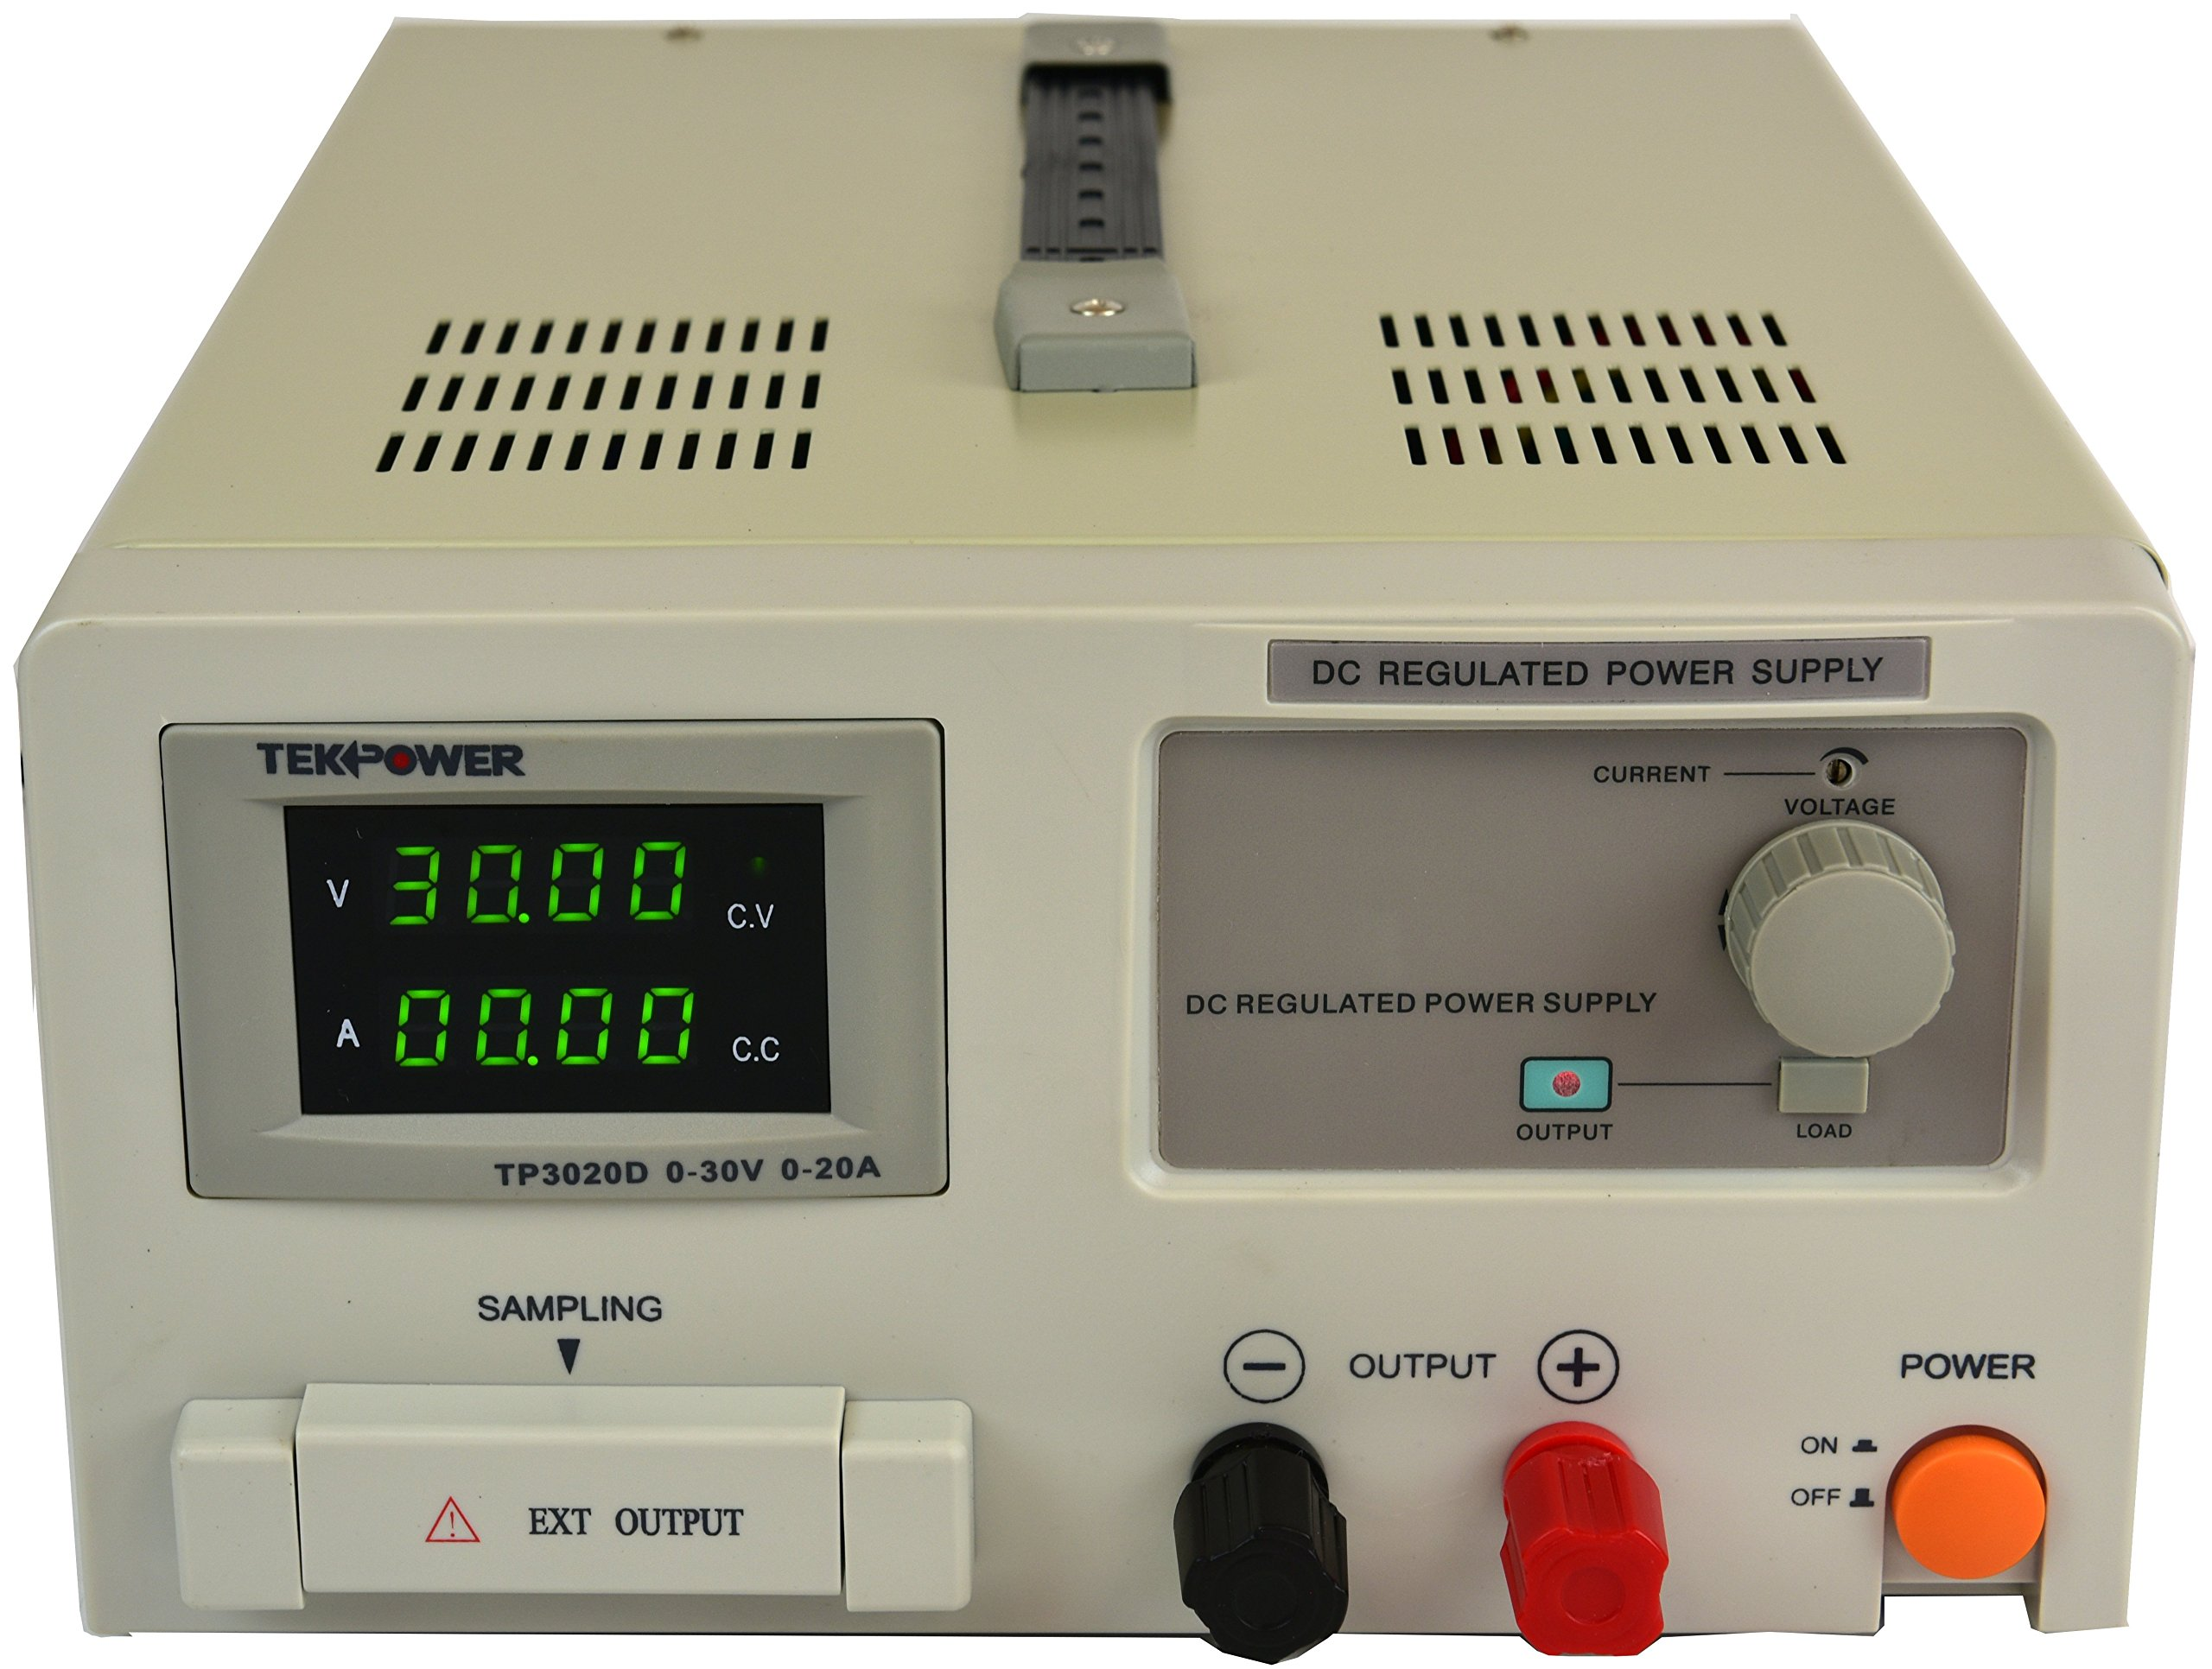 Tekpower TP3020D DC Adjustable Linear Power Supply,0-30V @0-20A, Transformer Type Clean Power Source (30Volt/ 20A), Better Version Mastech and Dr.Meter HY3020D